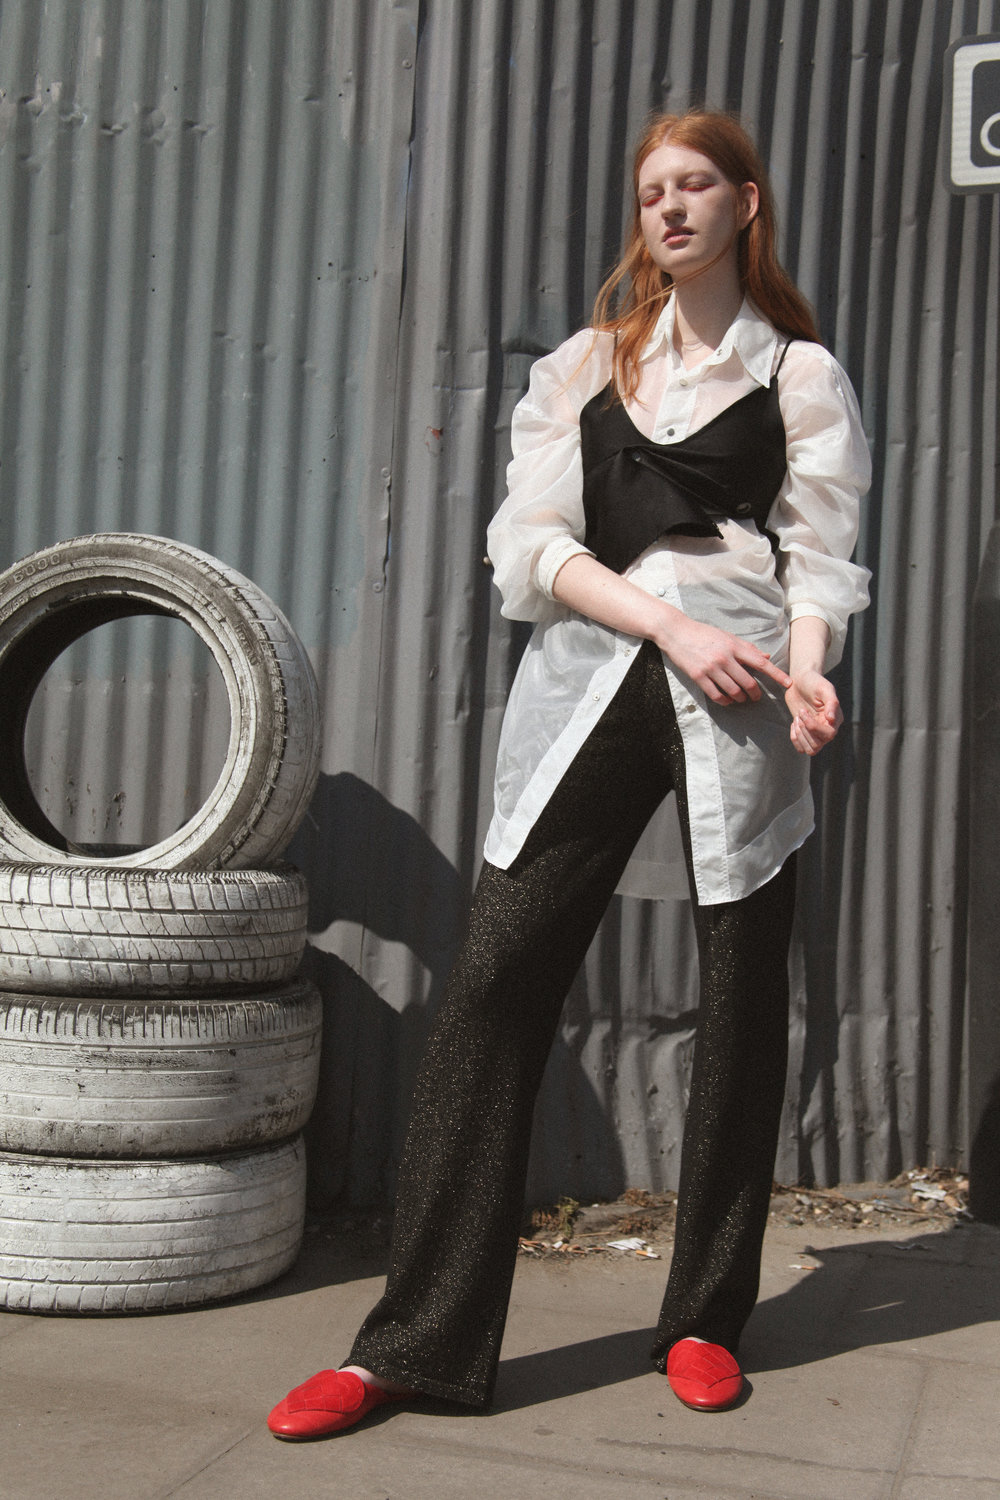 shirt BETH HALL, cami TARA LEE, trousers GENEVIEVE SWEENEY, slippers A.ANDREASSEN